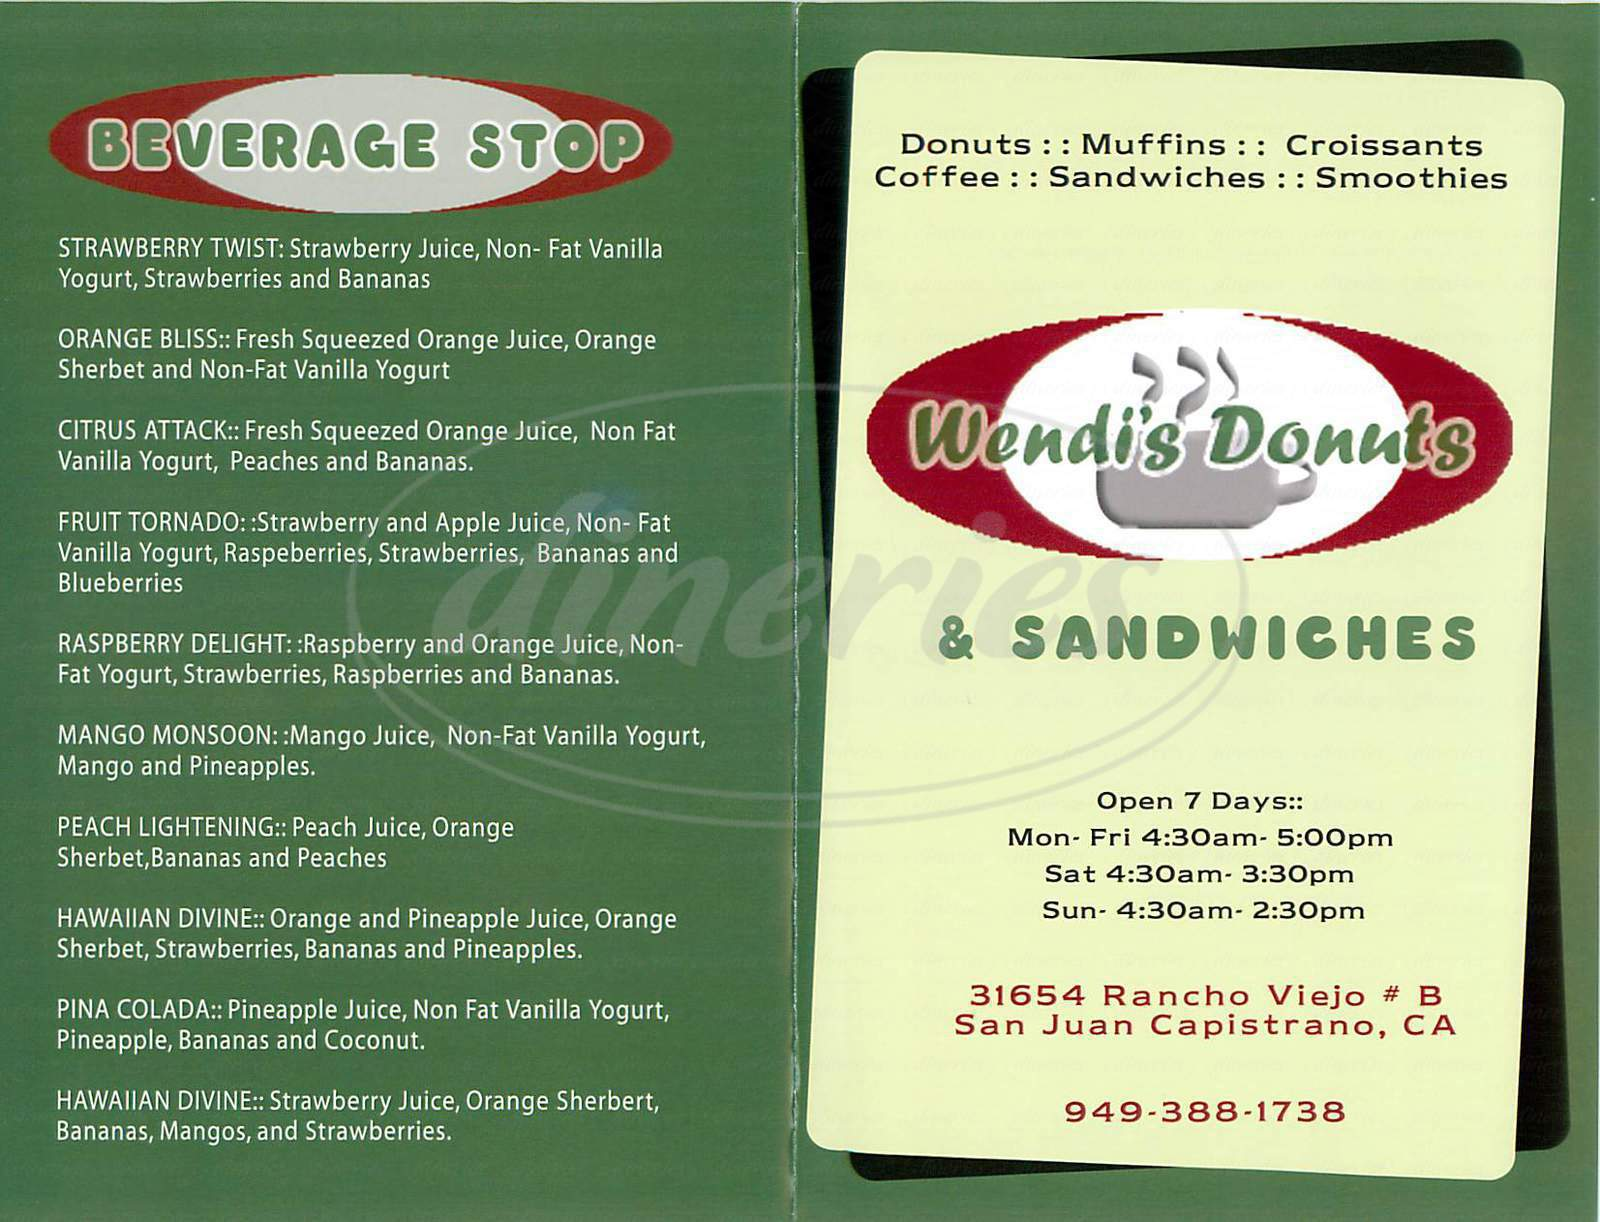 menu for Wendi's Donuts